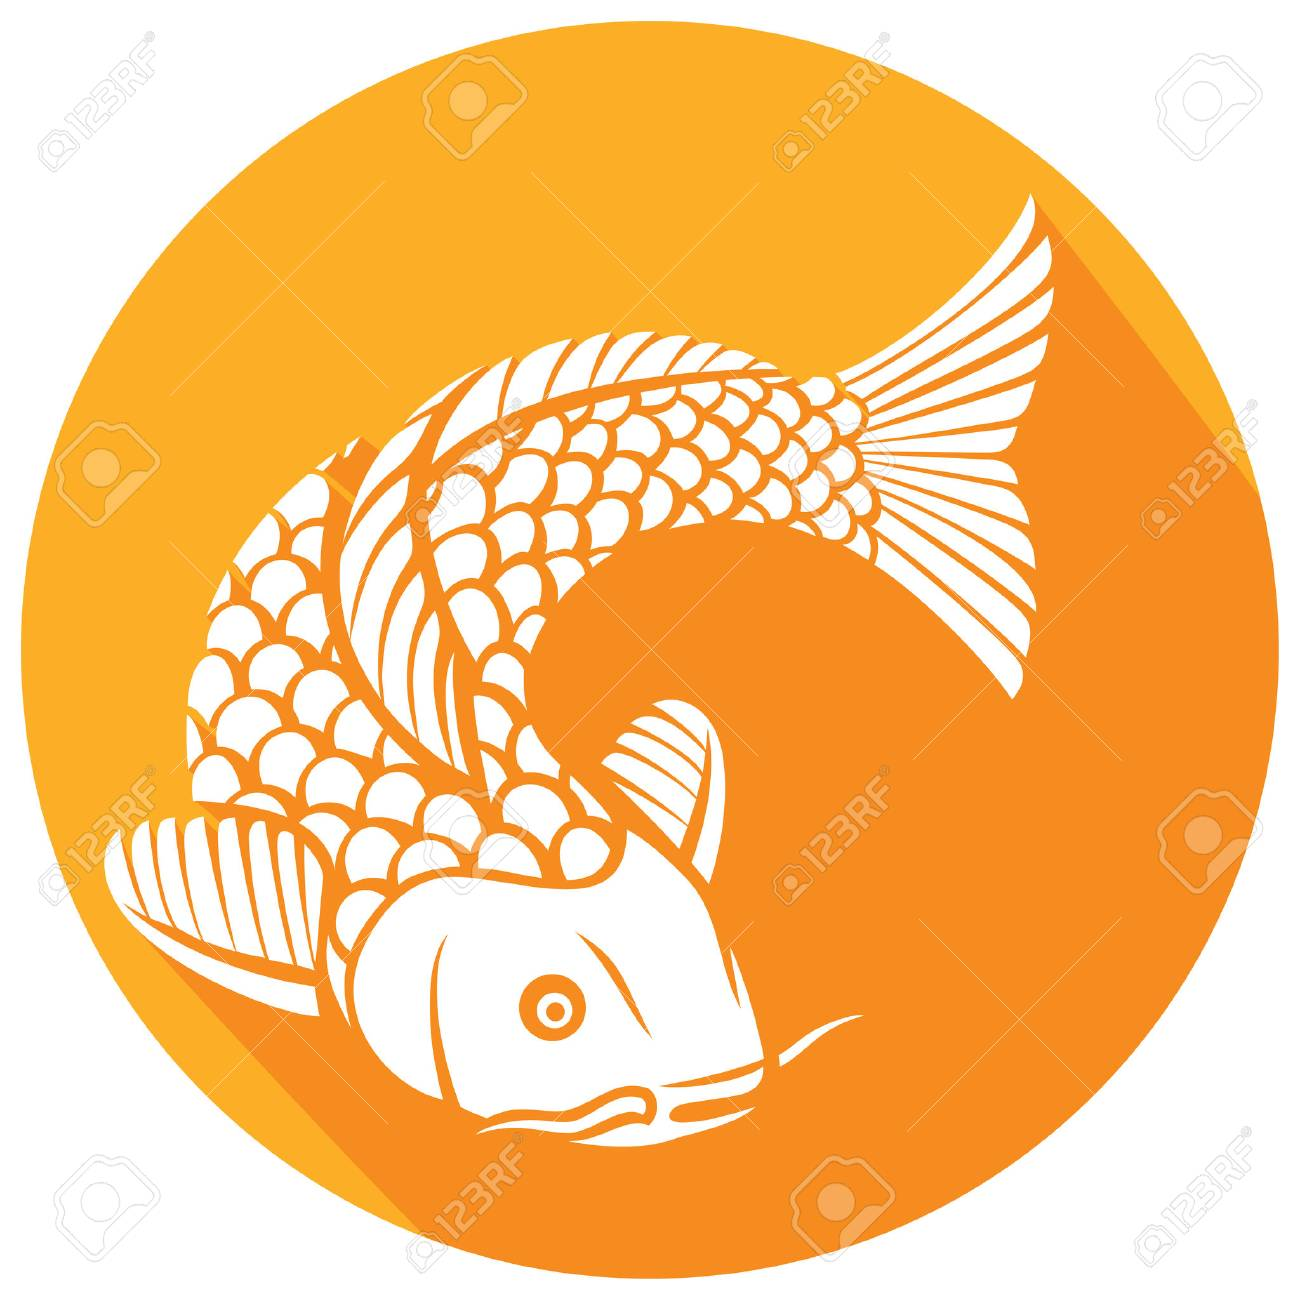 Koi fish flat icon japanese or chinese inspired koi carp fish koi fish flat icon japanese or chinese inspired koi carp fish stock vector buycottarizona Gallery